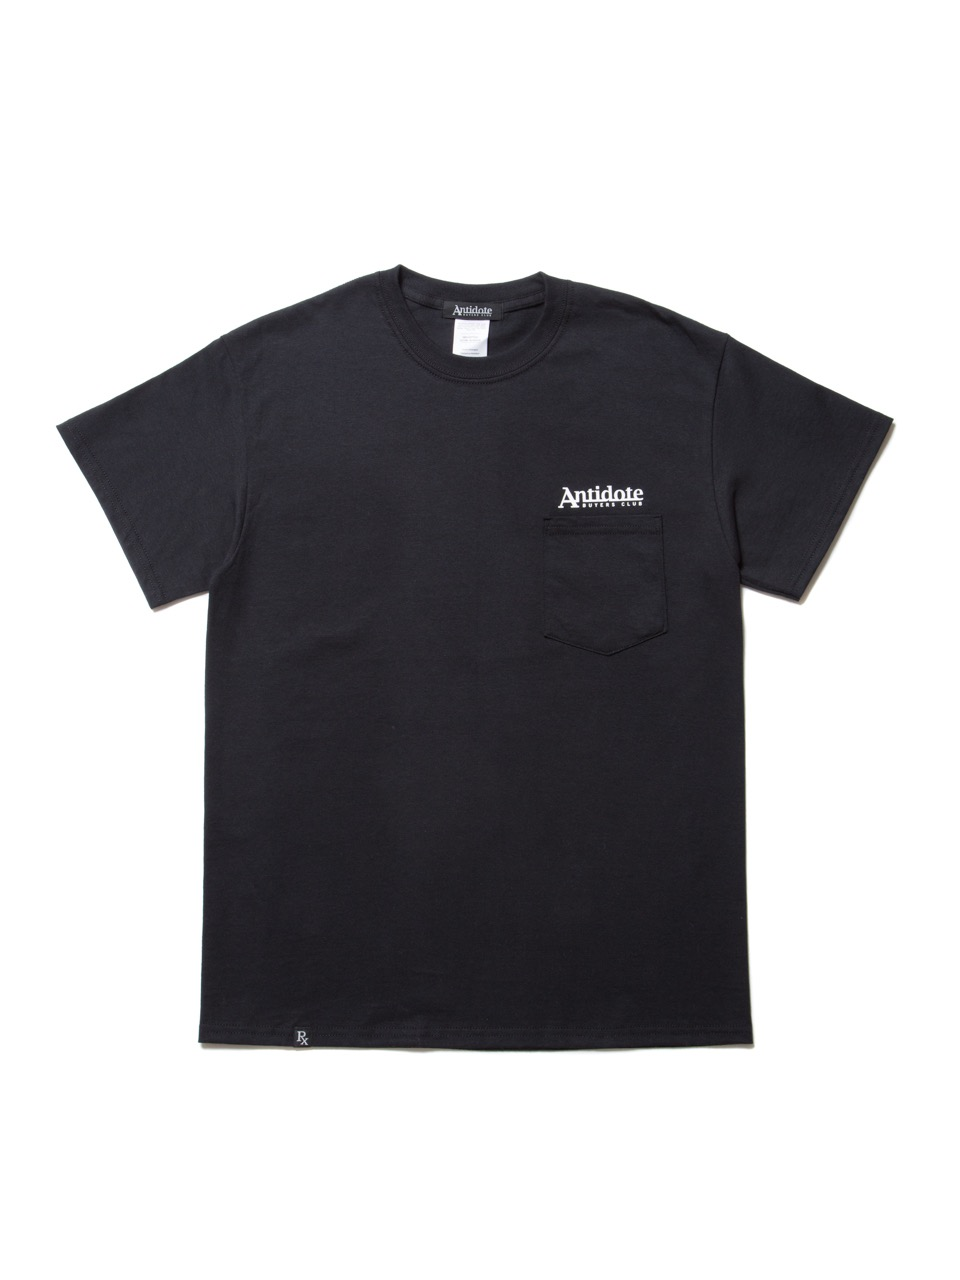 ANTIDOTE BUYERS CLUB Print S/S Pocket Tee (CLASSIC)